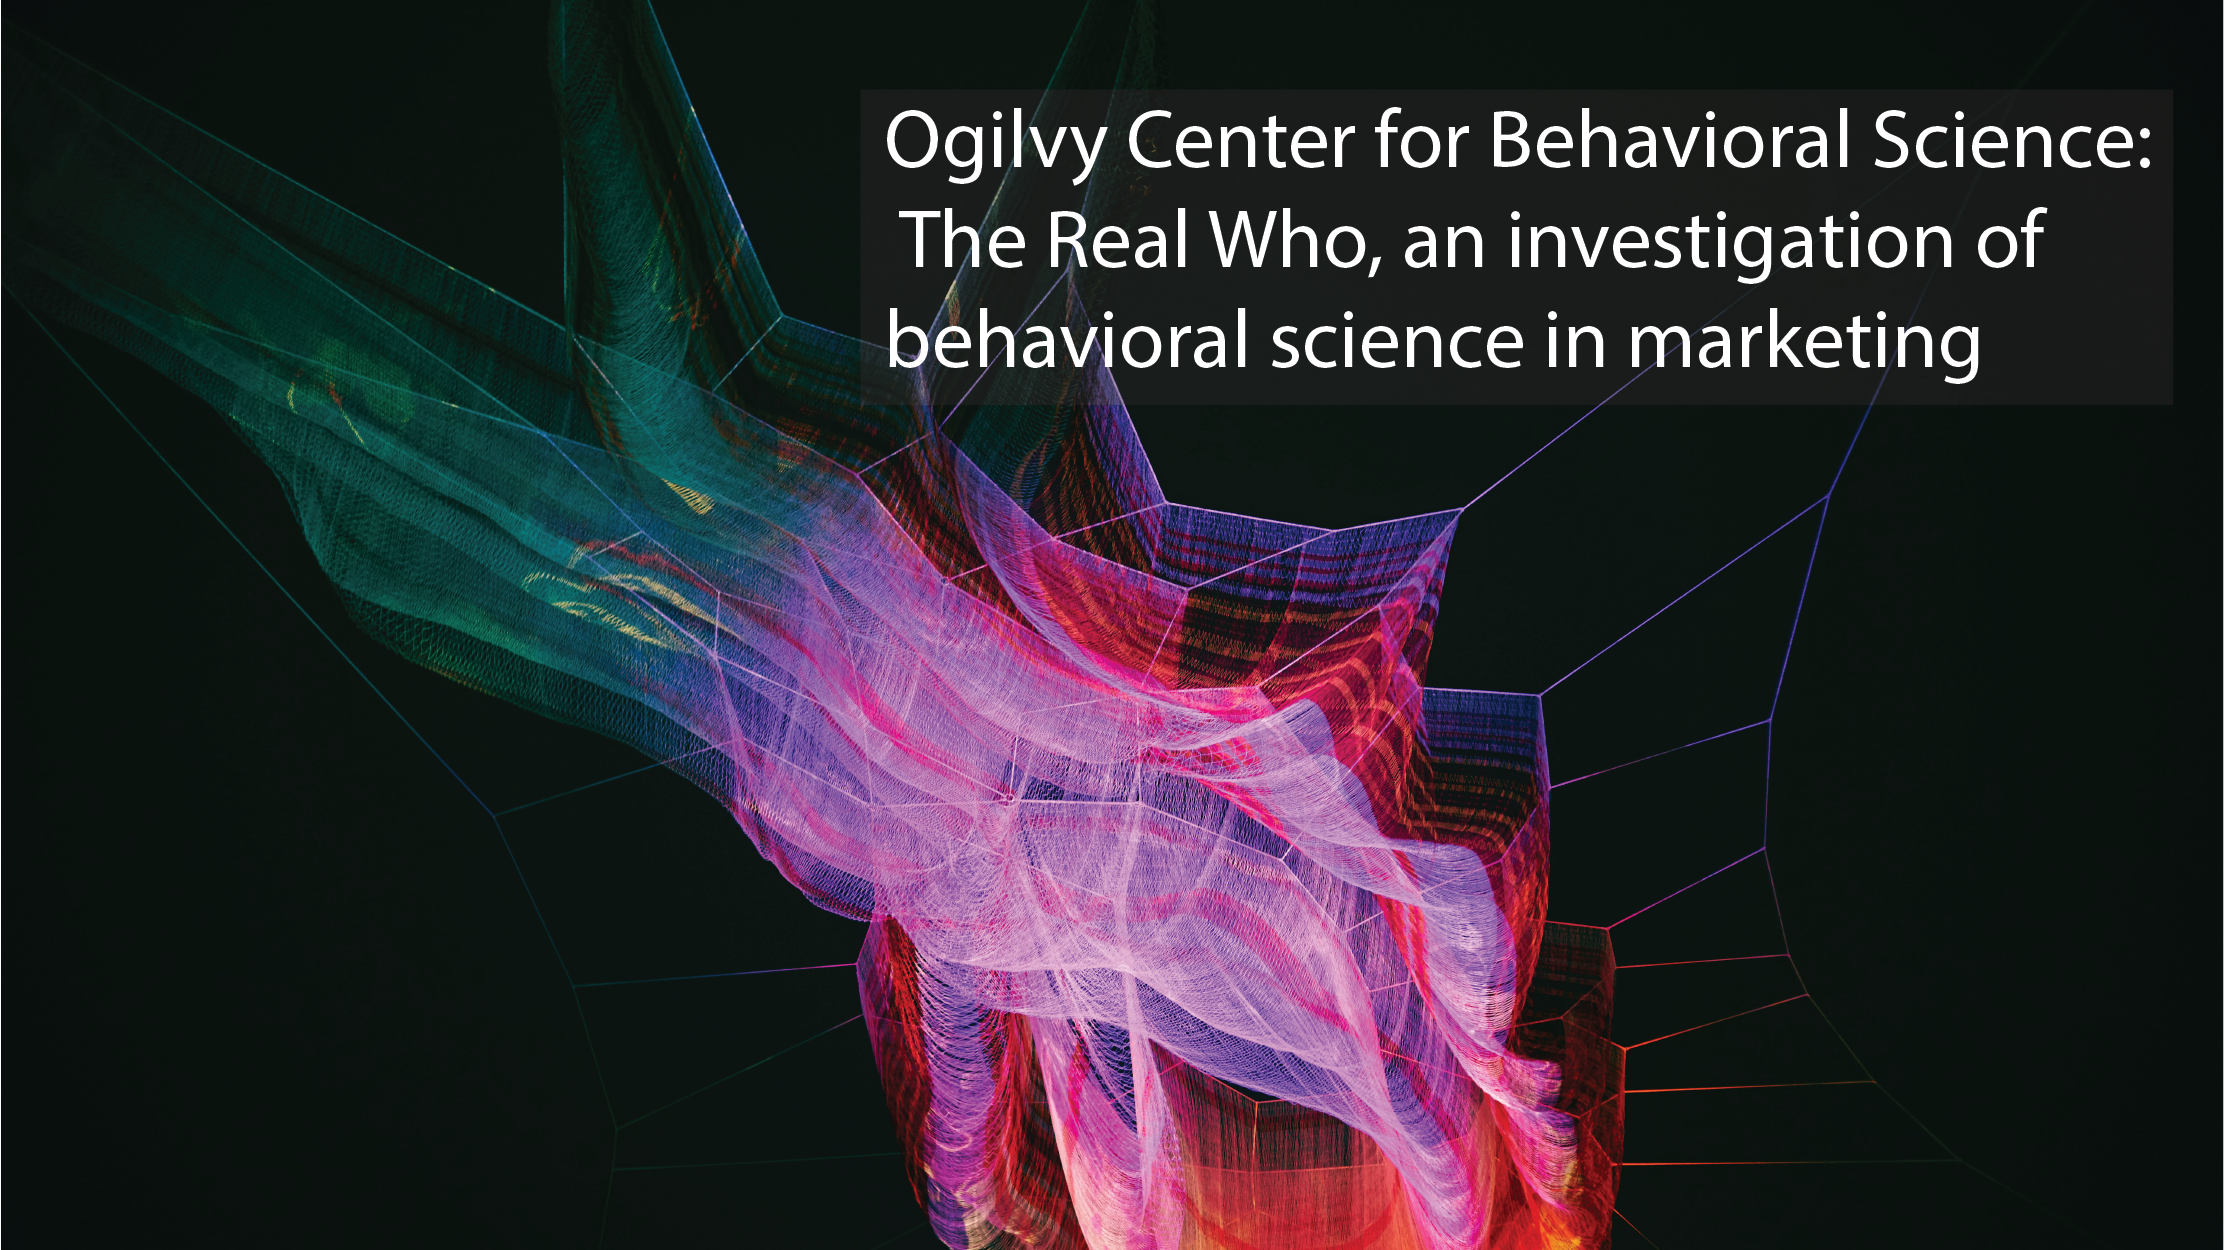 Ogilvy: The Real Who, an investigation of behavioral science in marketing